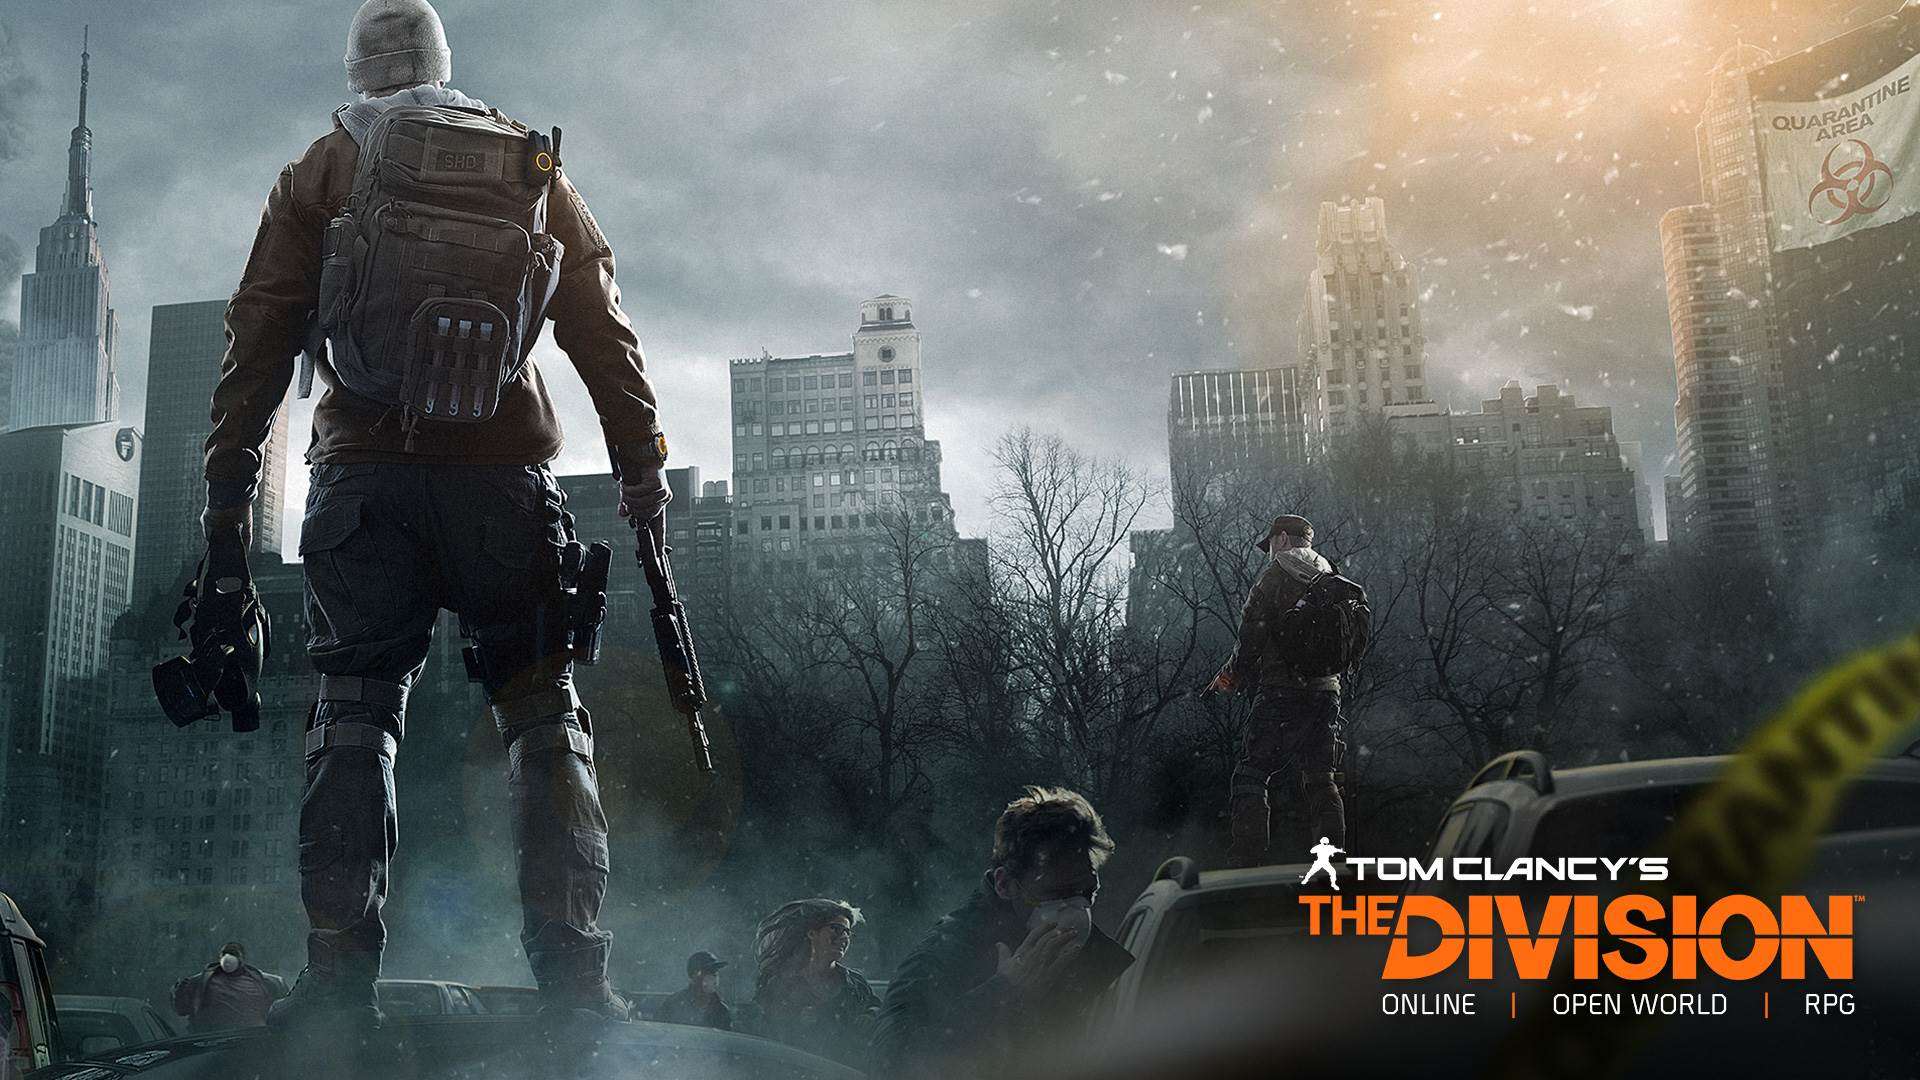 Tom Clancy Games For Ps4 : Tom clancy s the division wallpapers in p hd